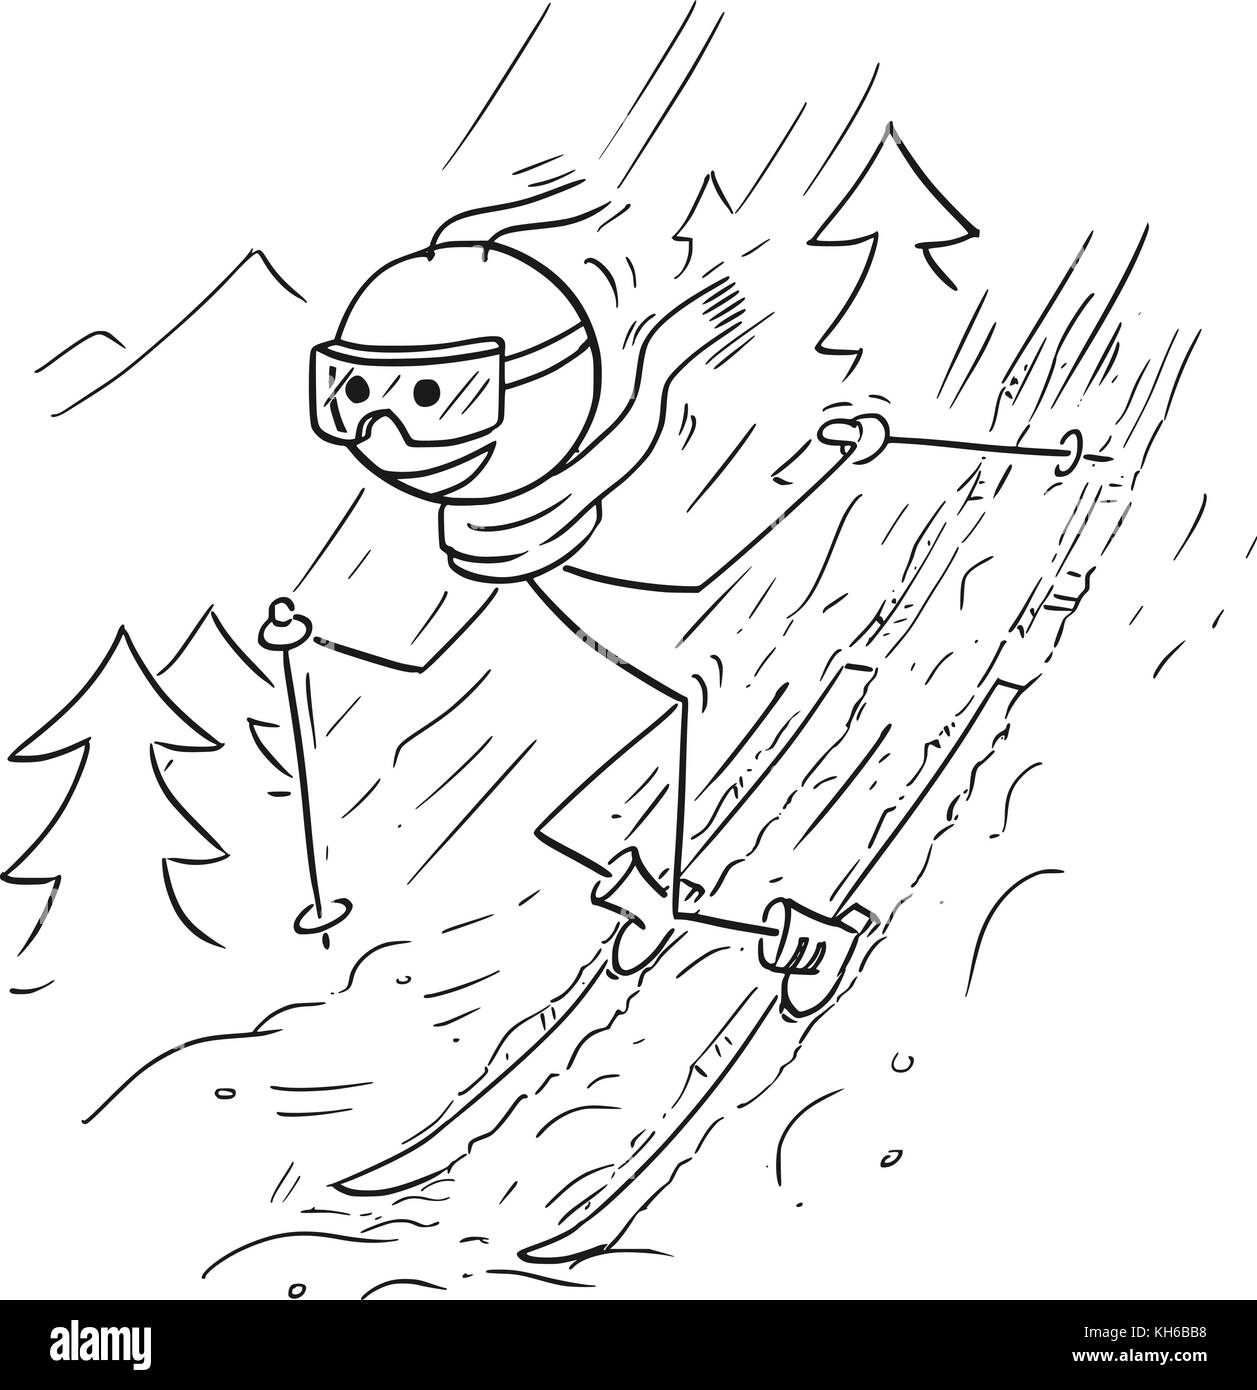 Cartoon drawing illustration of stick man doing extreme ski on snow in mountains. - Stock Vector